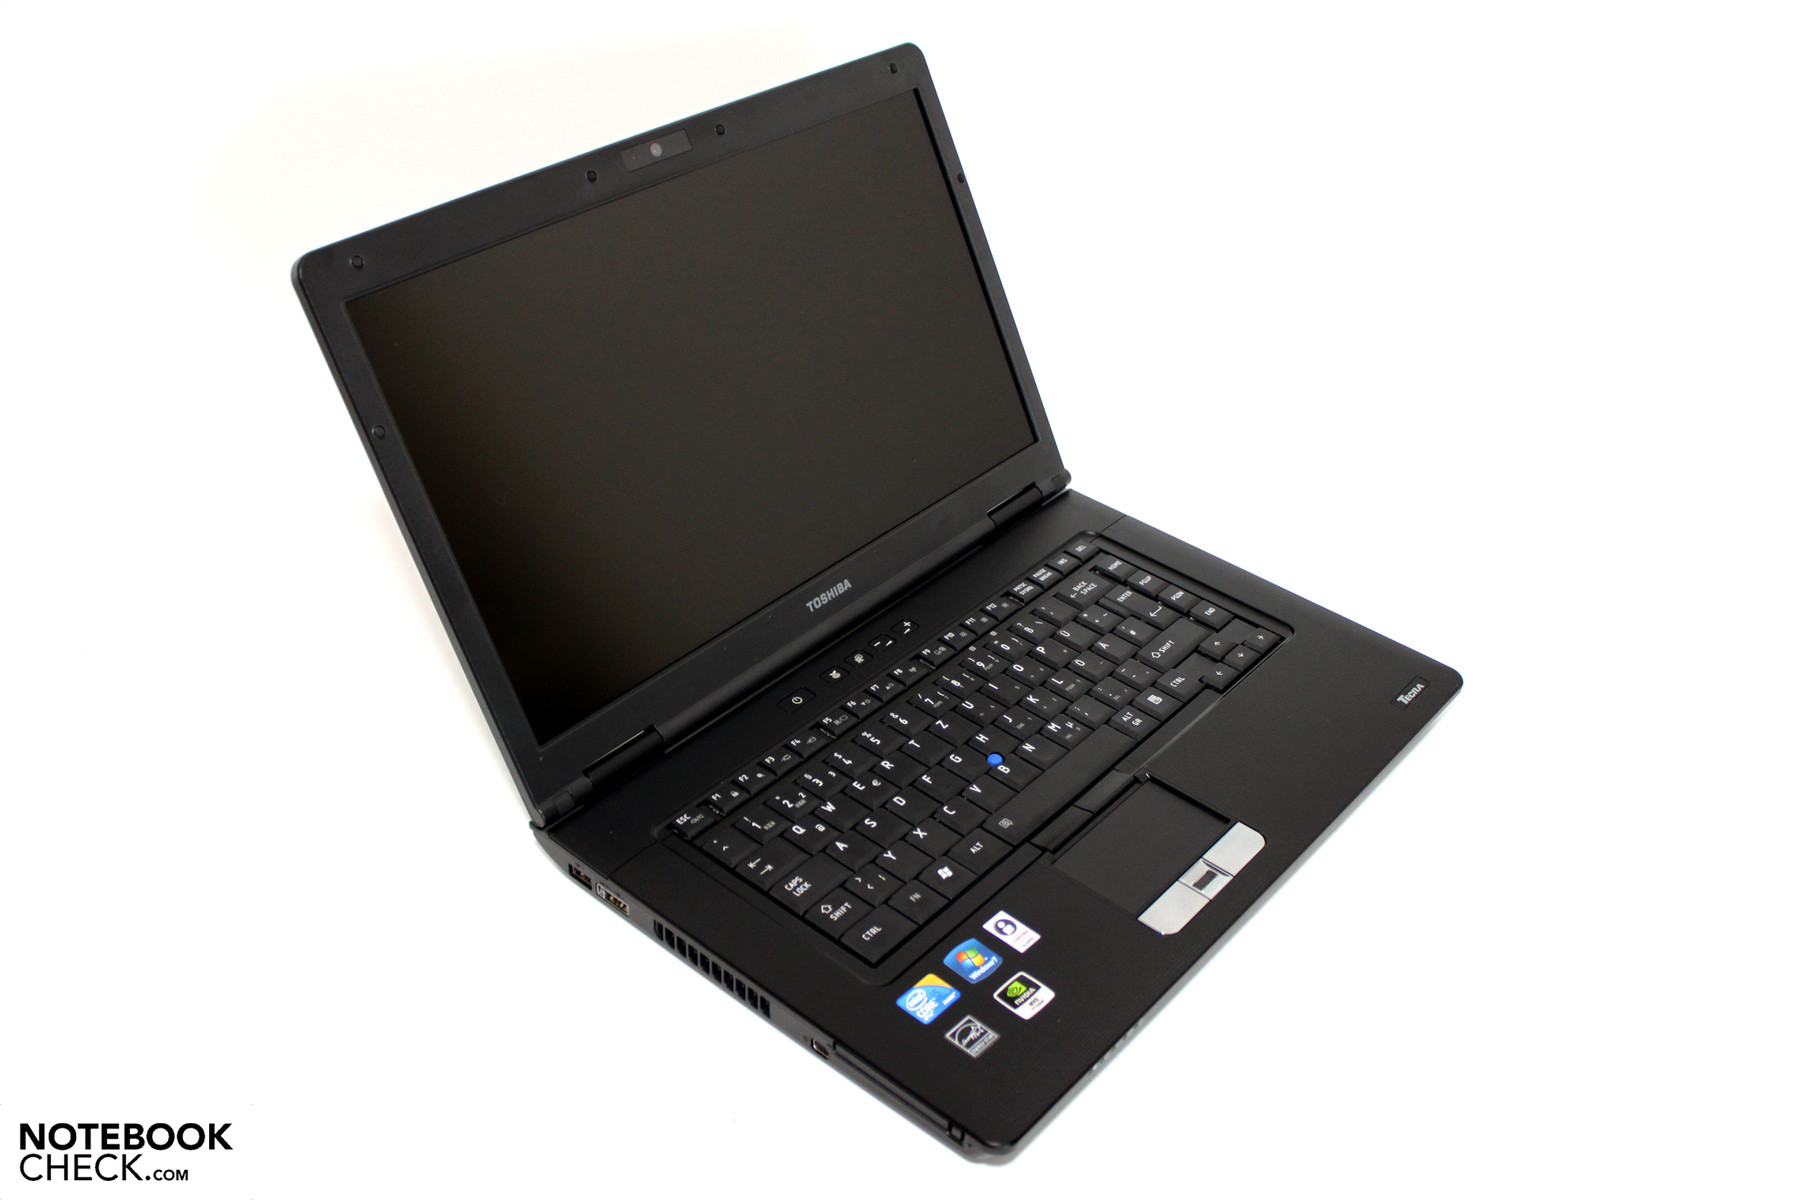 TOSHIBA TECRA S11-13G DRIVER WINDOWS 7 (2019)